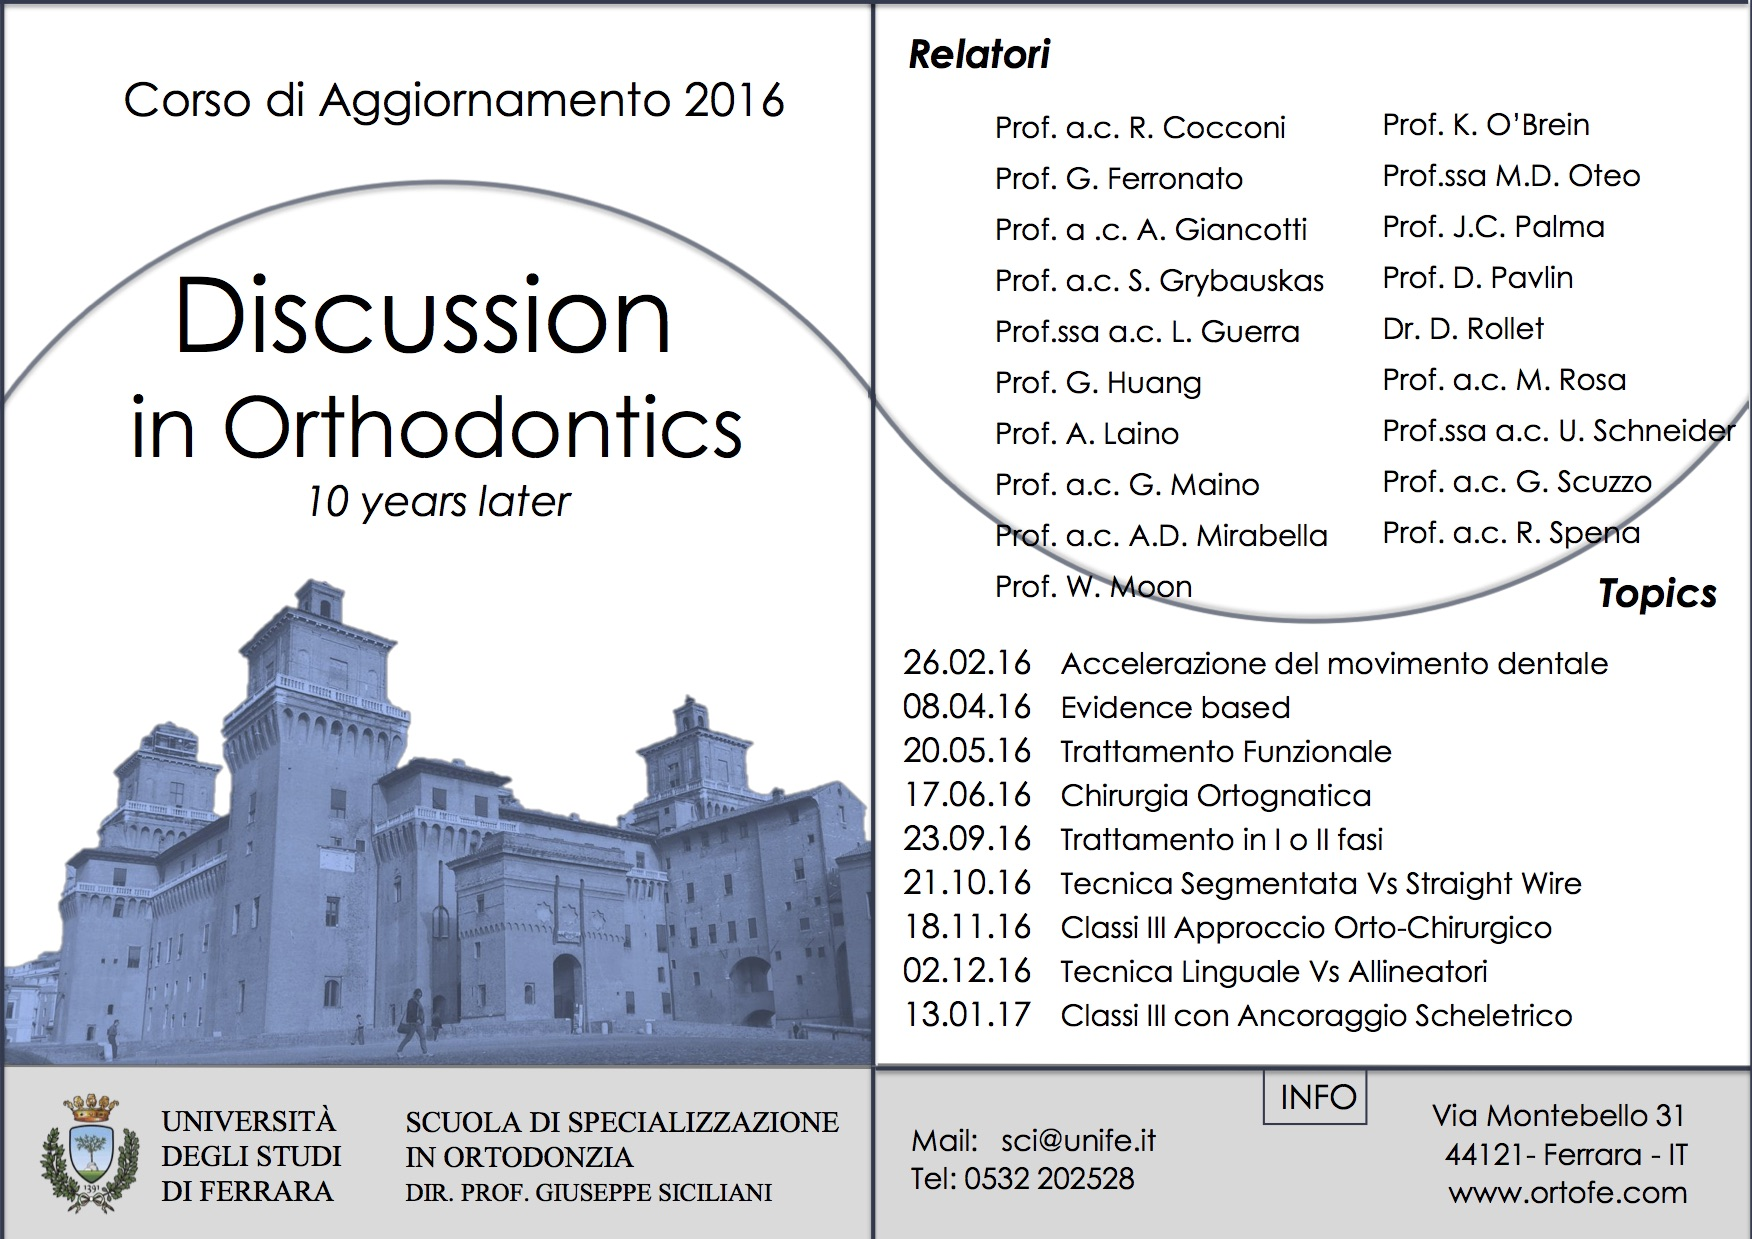 Discussion in orthodontics 2016